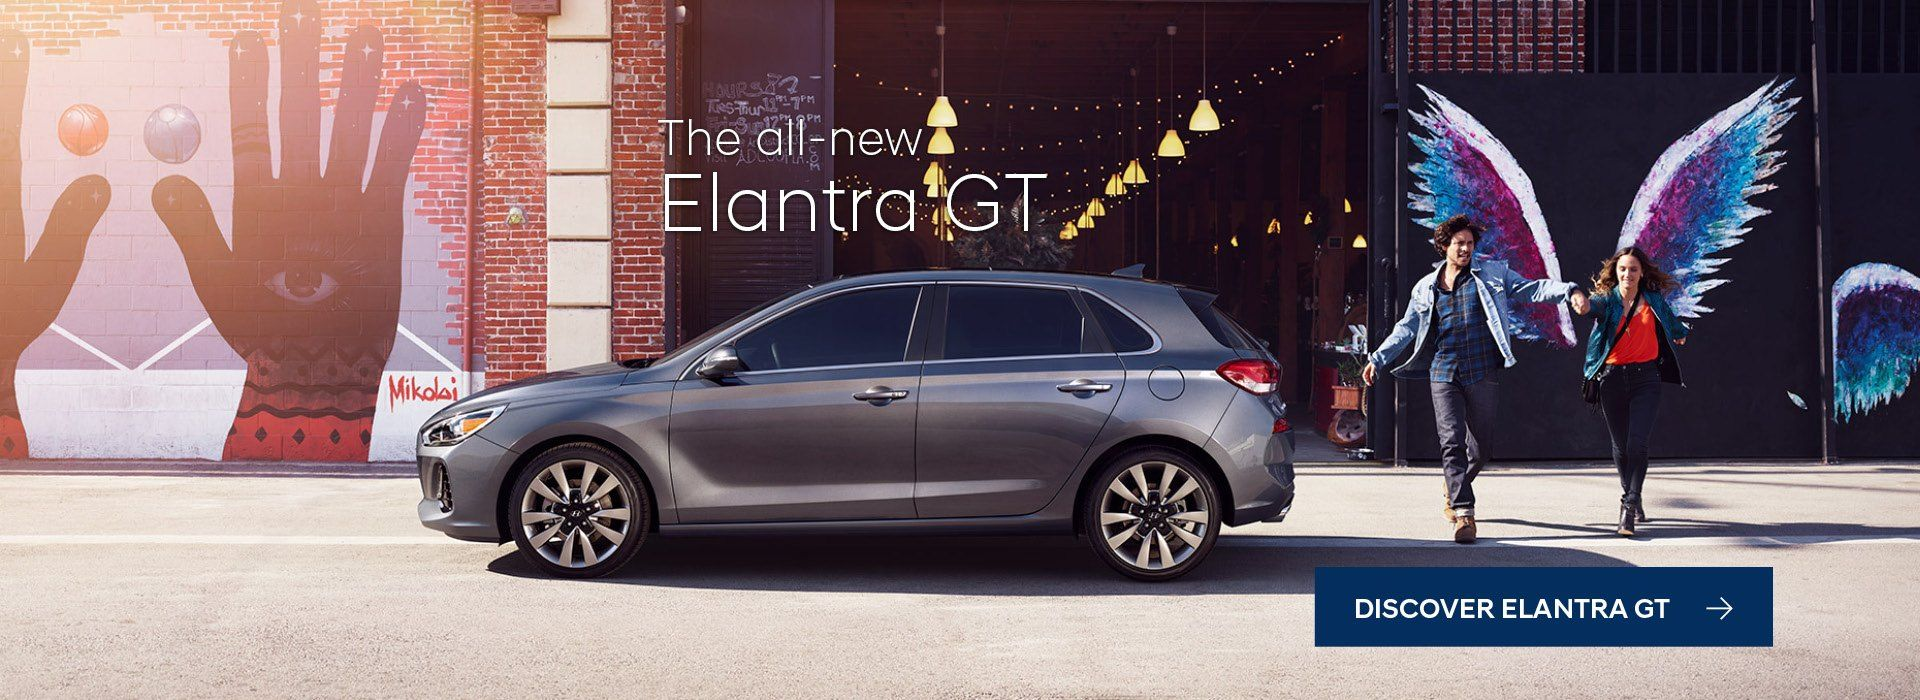 Discover the All-New Elantra GT